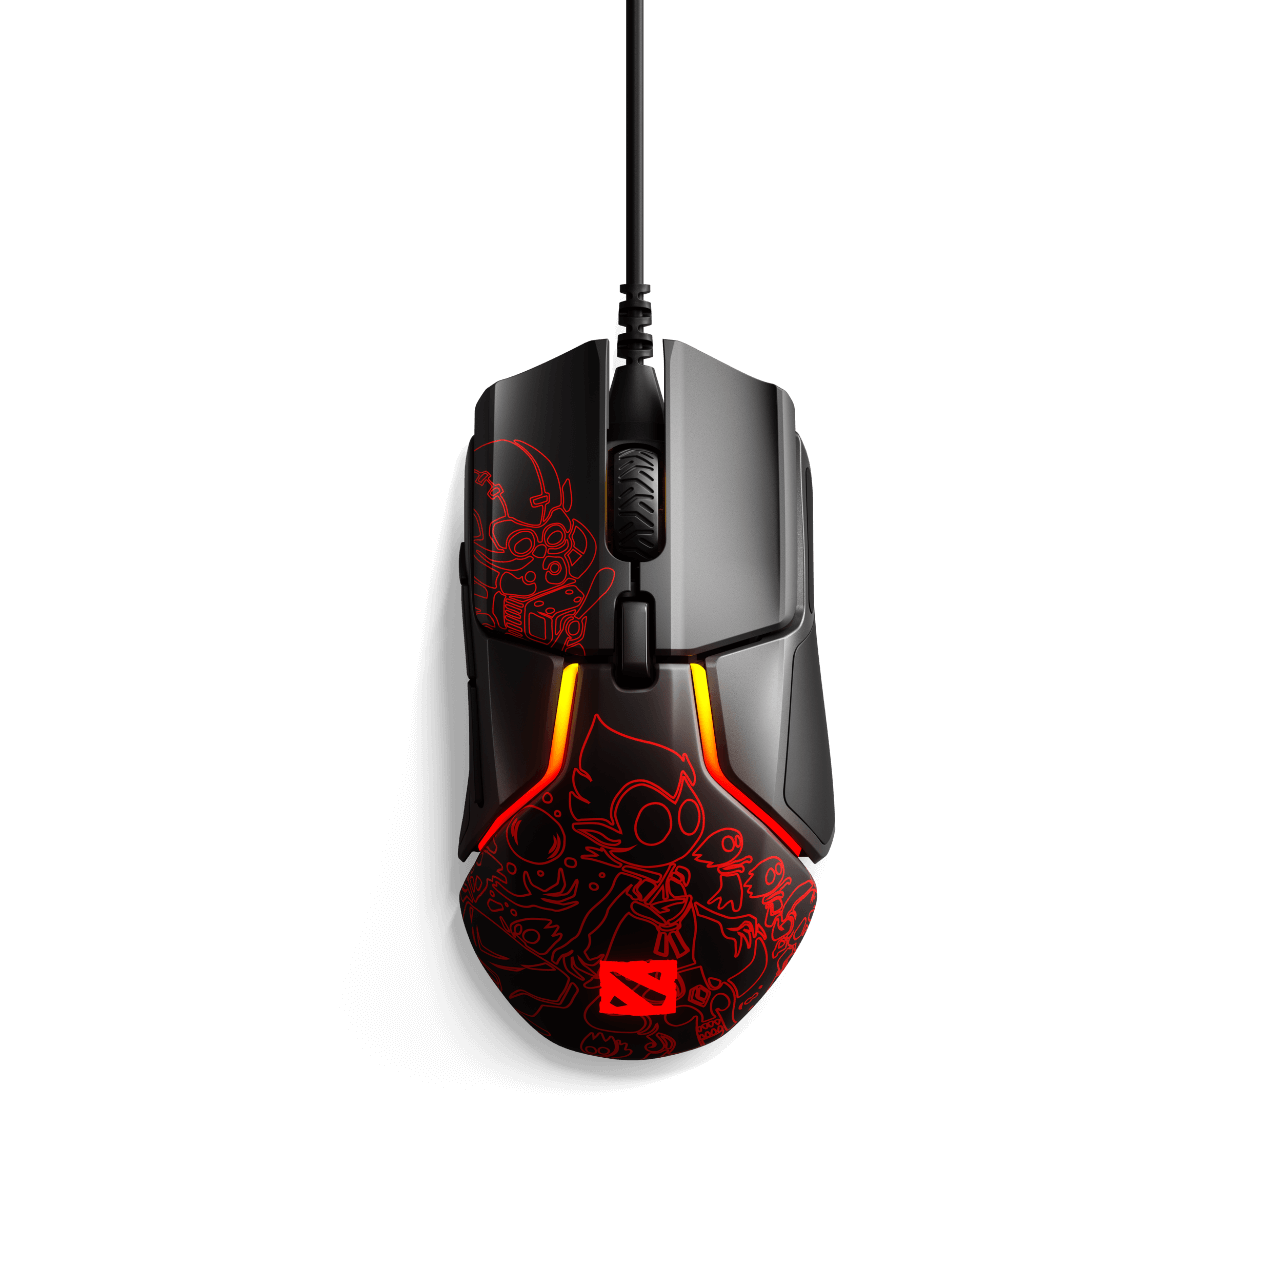 Rival 600鼠标.png